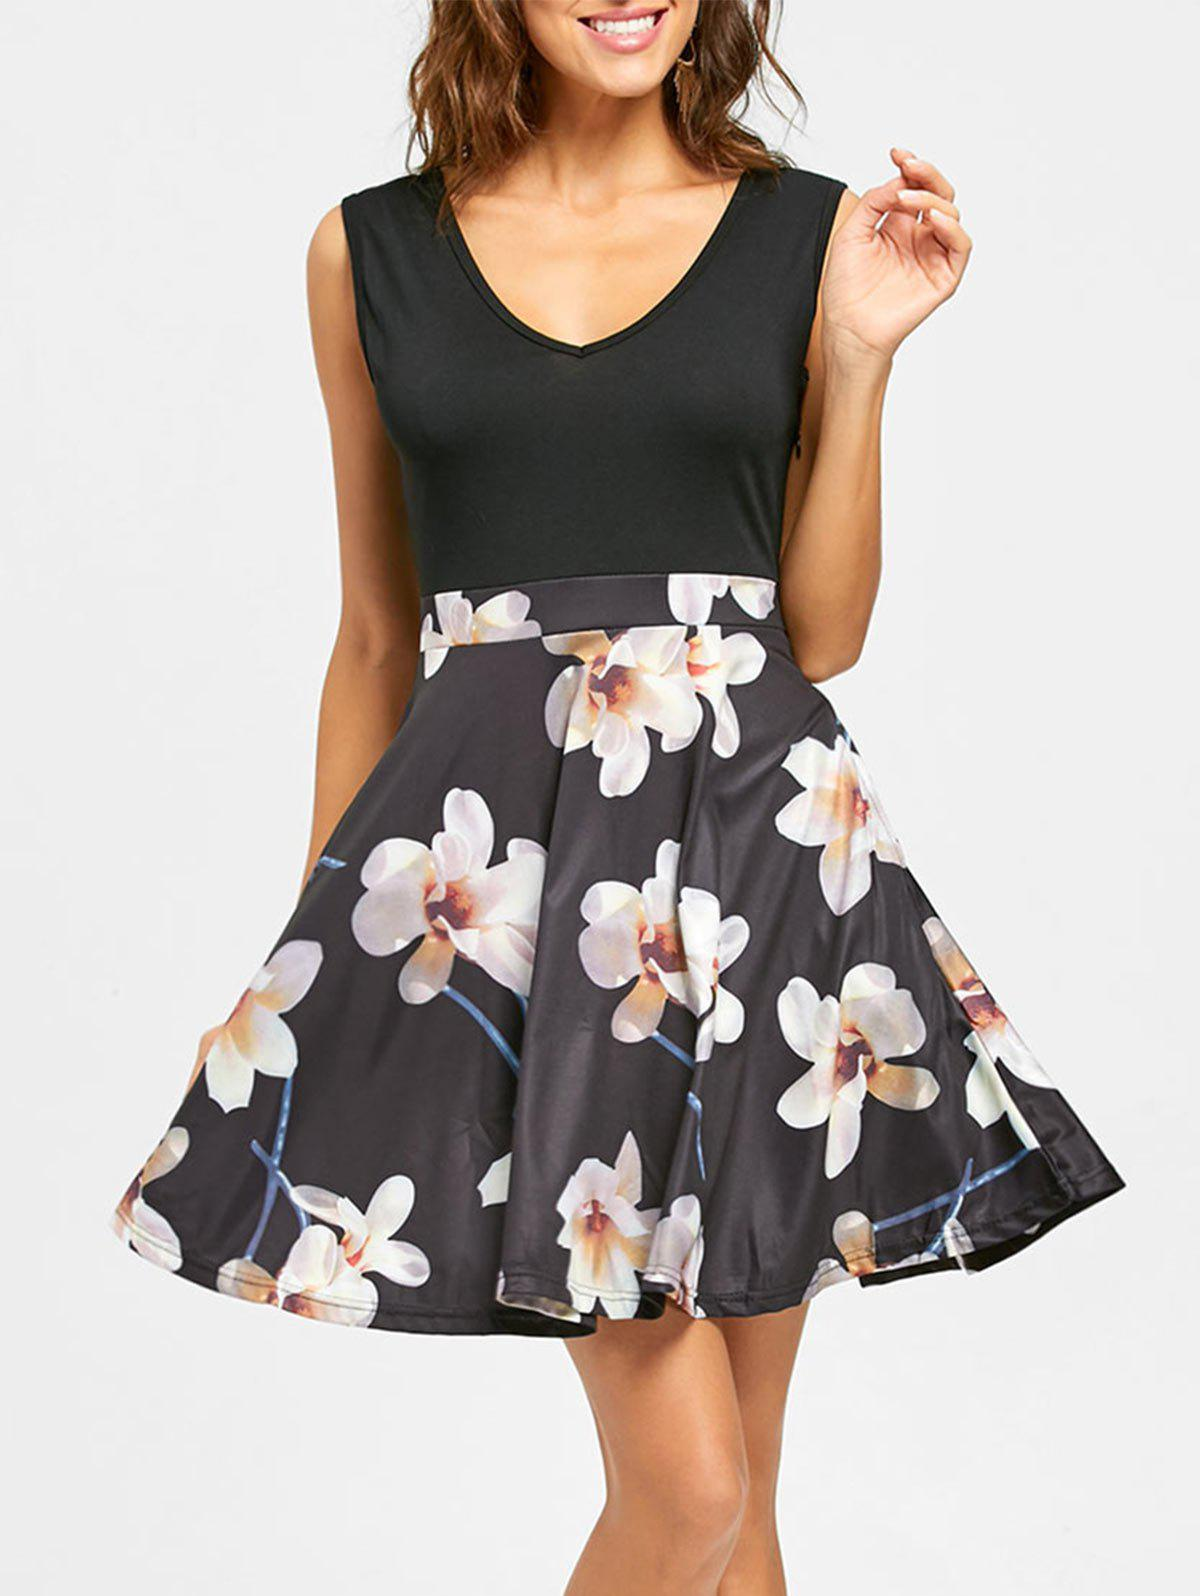 Floral Print V Neck Sleeveless Mini Dress - BLACK XL